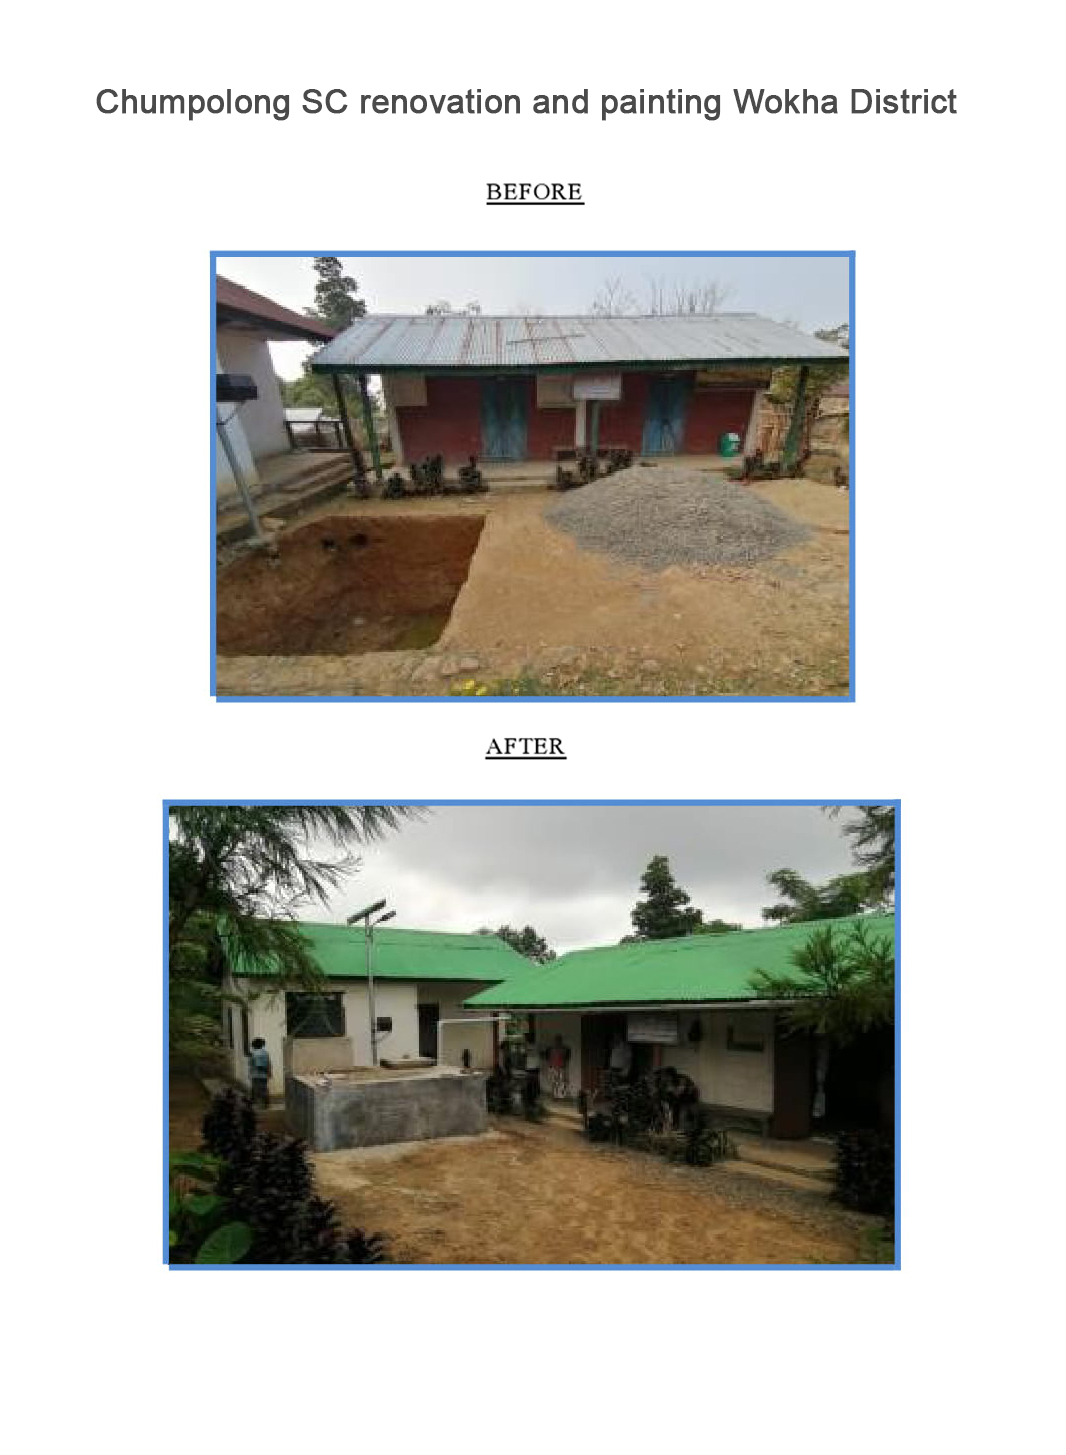 Chumpolong-SC-renovation-and-painting-Wokha-District